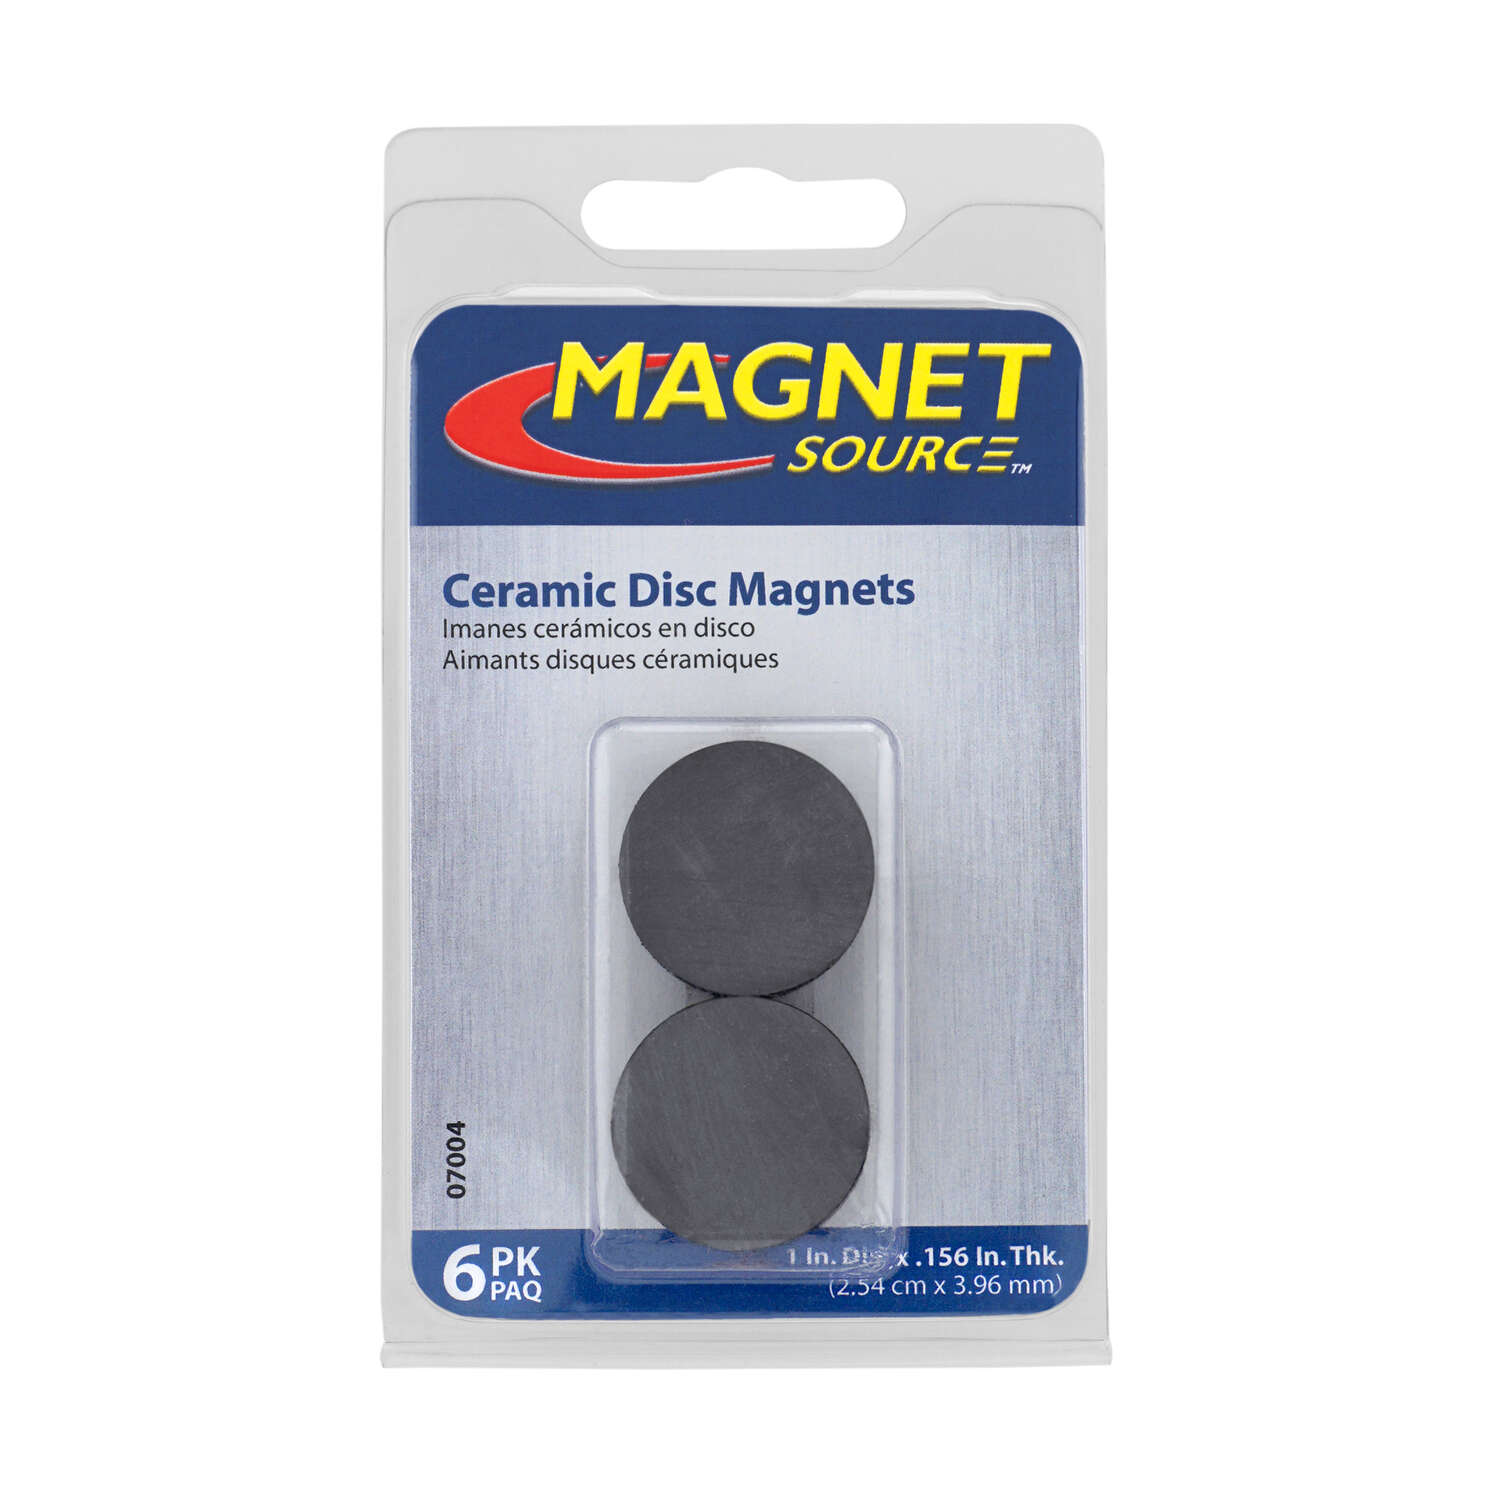 Master Magnetics  The Magnet Source  .156 in. Ceramic  Disc Magnets  Disc  0.8 lb. pull Black  6 pc.